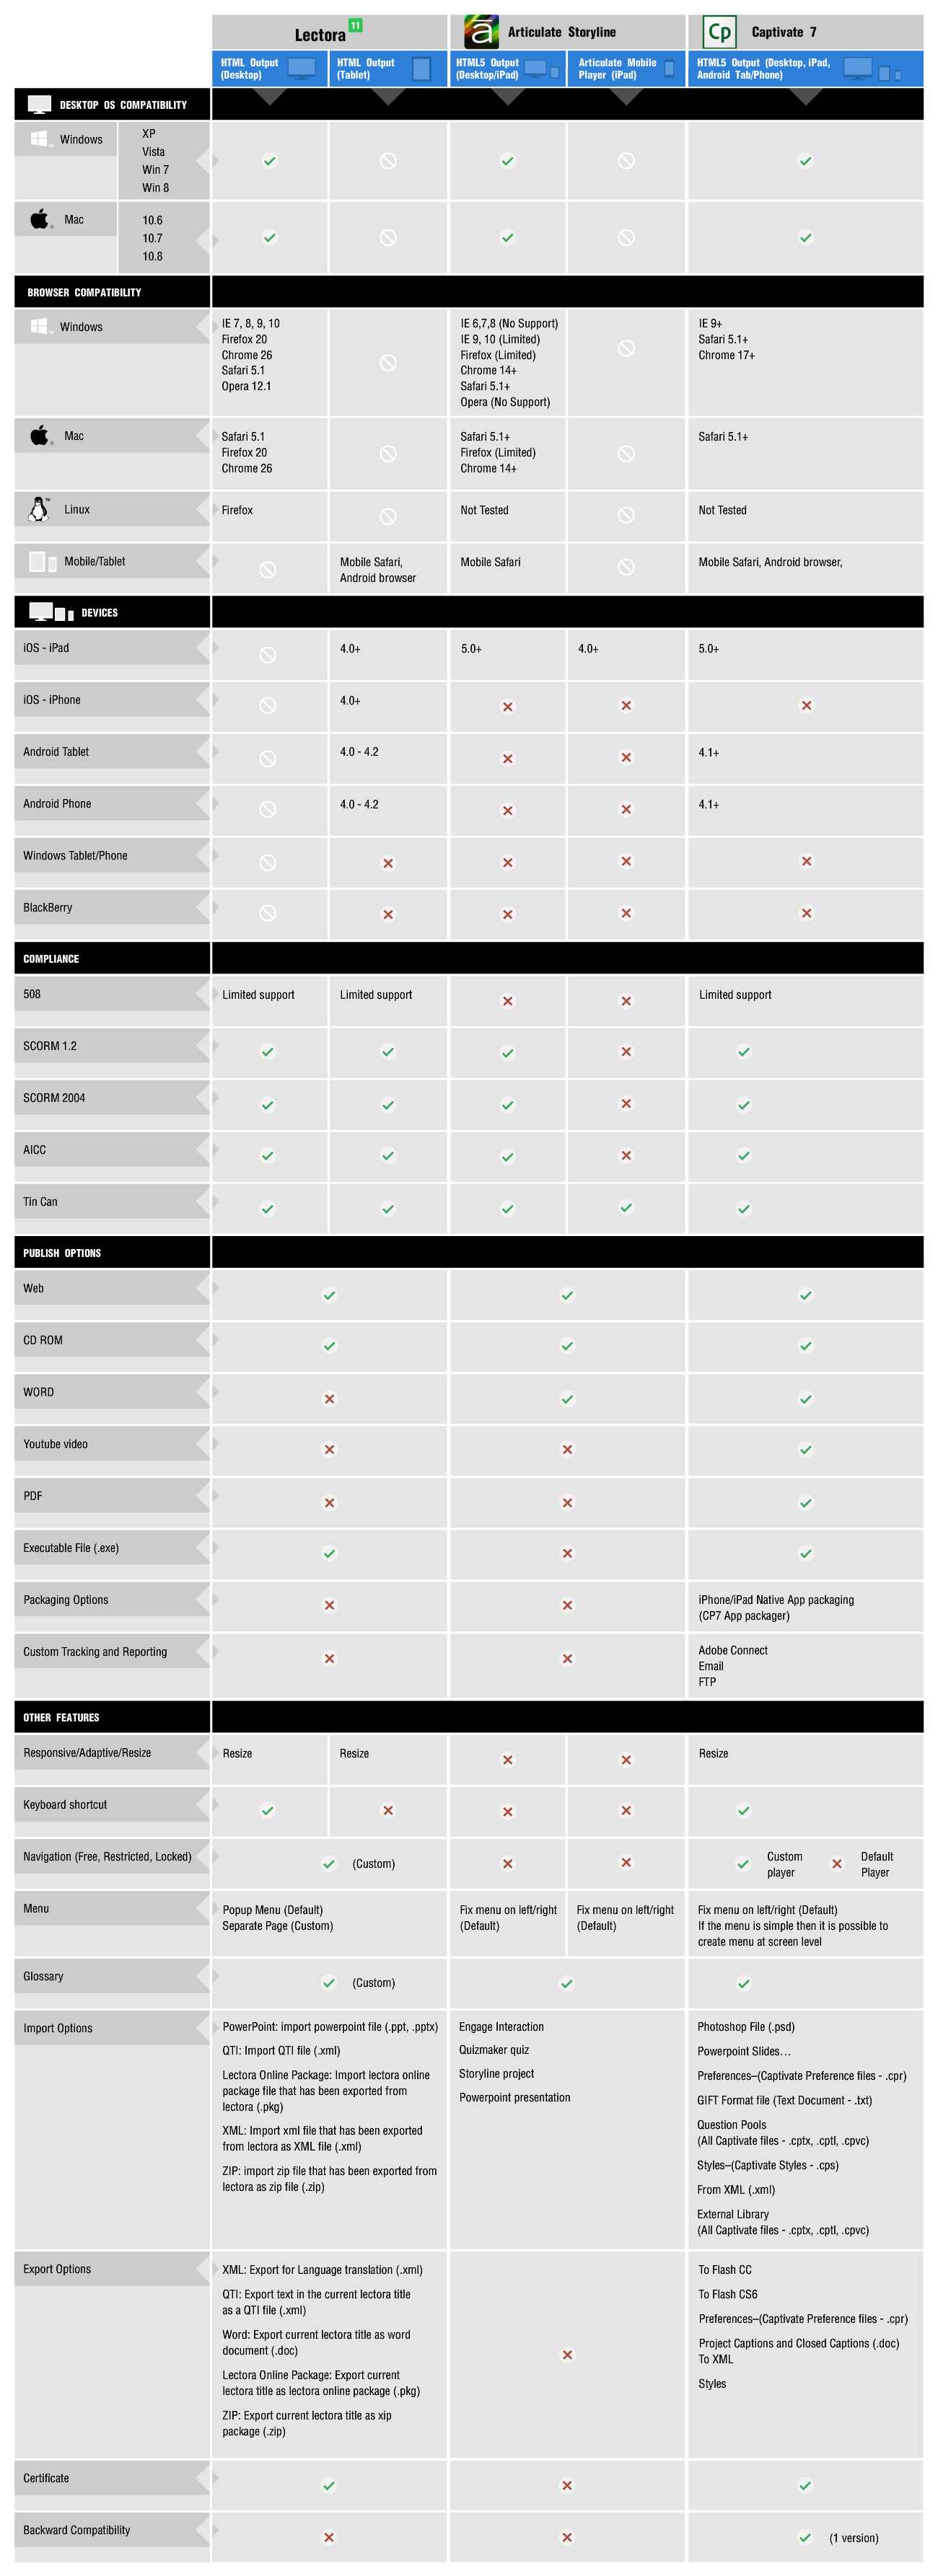 Target Environment_Comparison Sheet